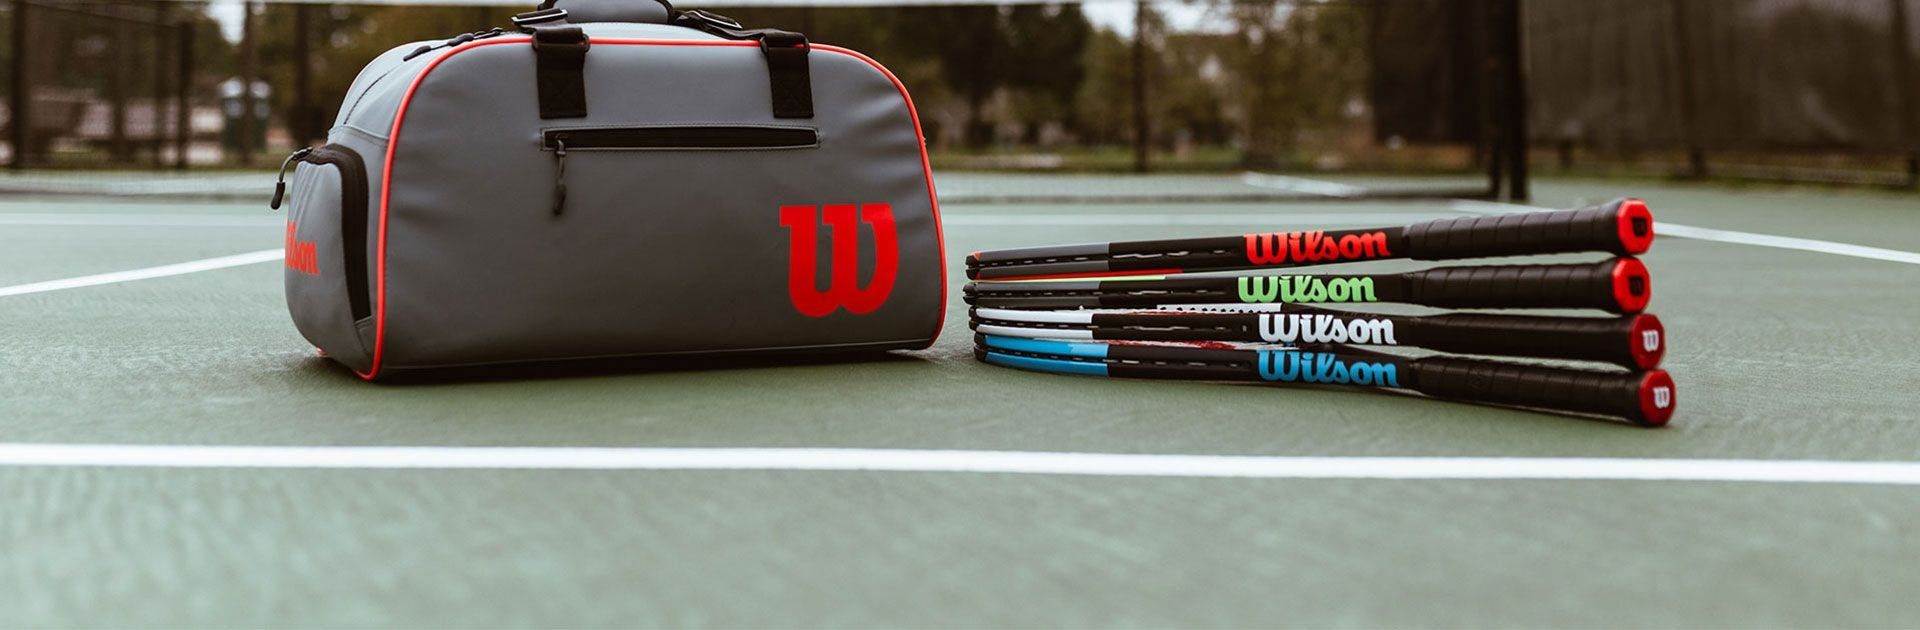 Clash duffel and family of Wilson rackets on tennis court